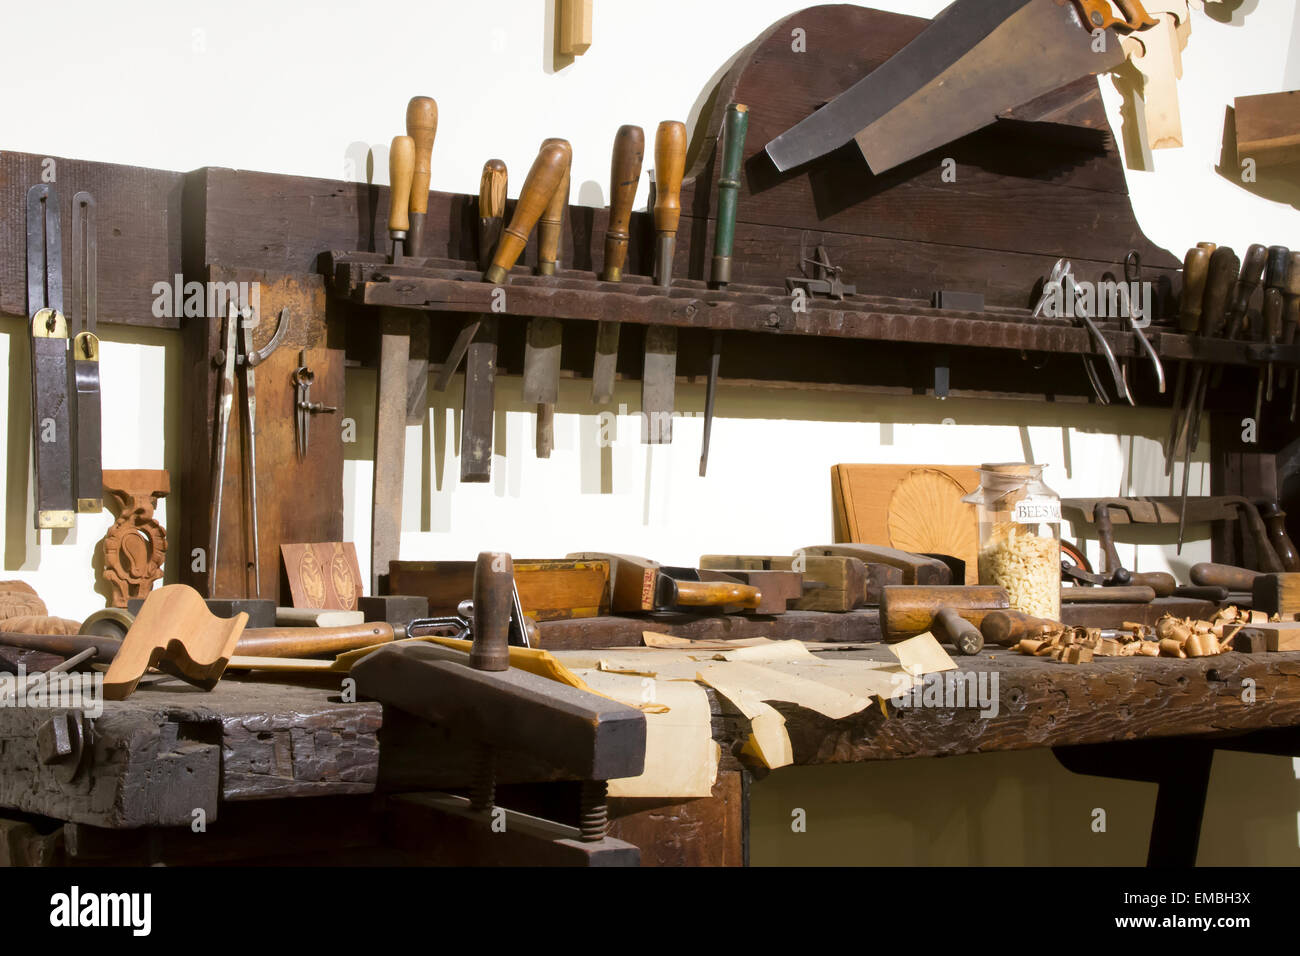 Woodworking tools and components on workbench - Stock Image